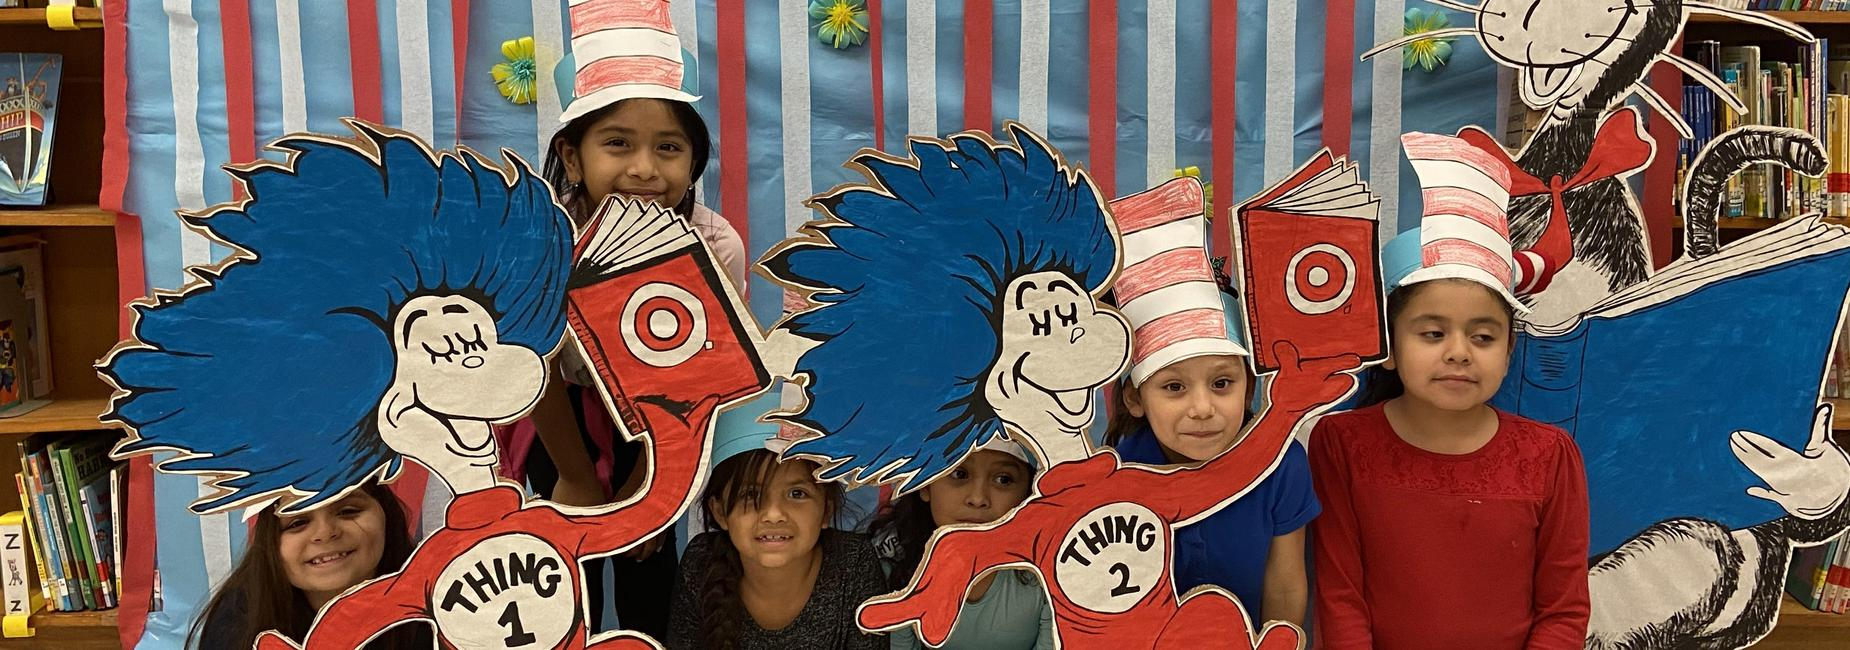 First graders pose with Dr. Seuss and friends!